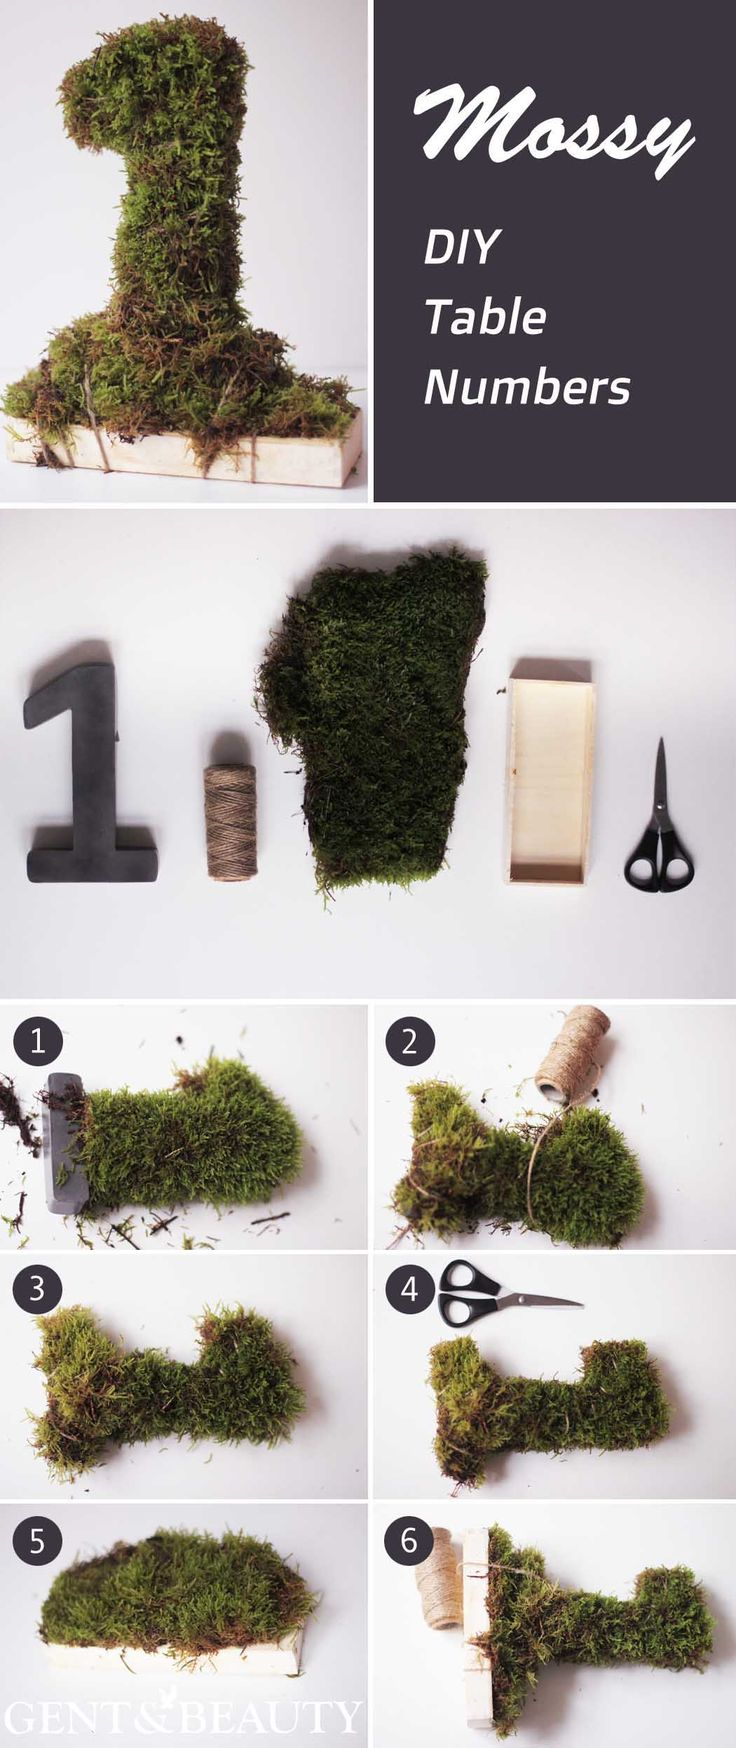 Mossy DIY Table Numbers